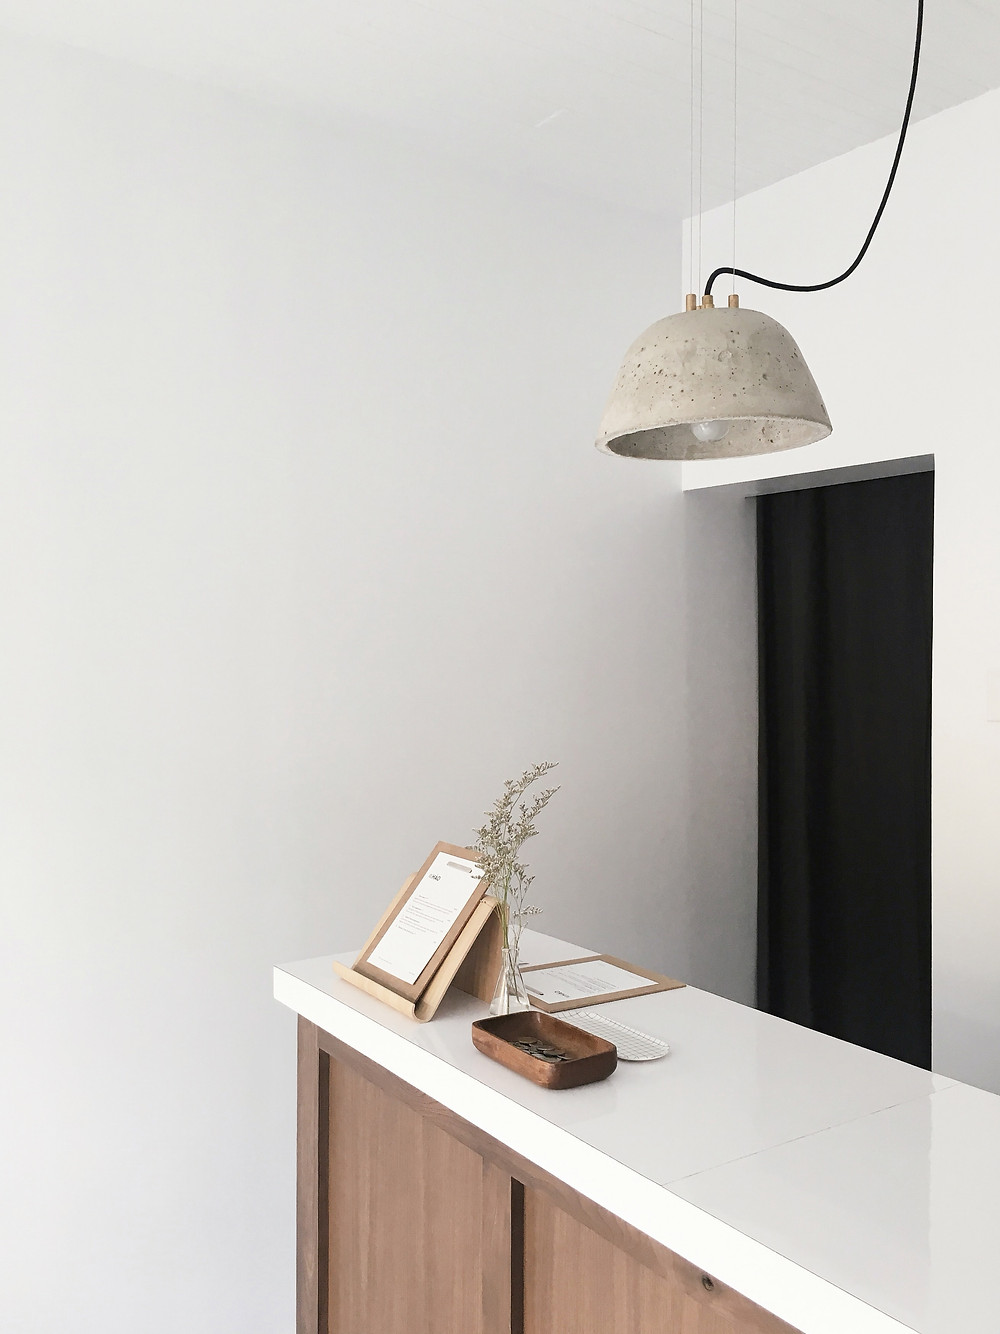 A light shade made from cement.